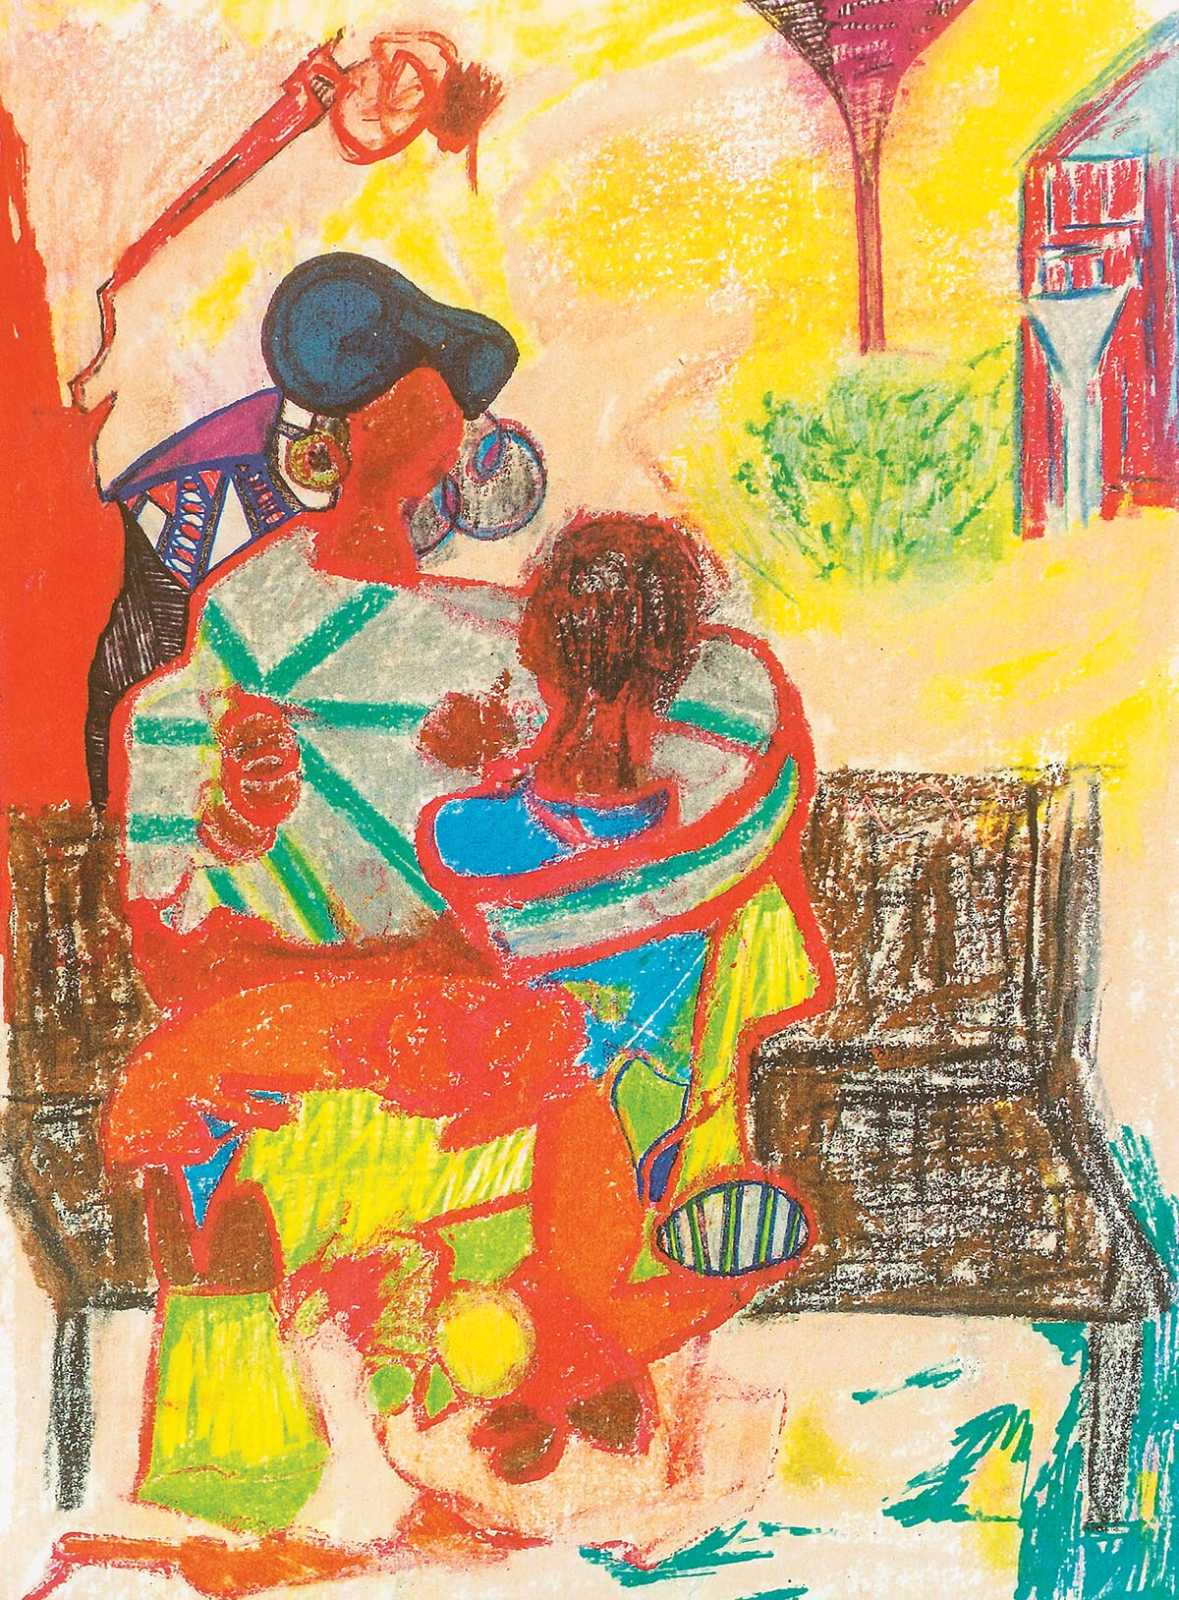 mother-embraces-son_crayon-and-colored-pencil-on-paper-dlc2300